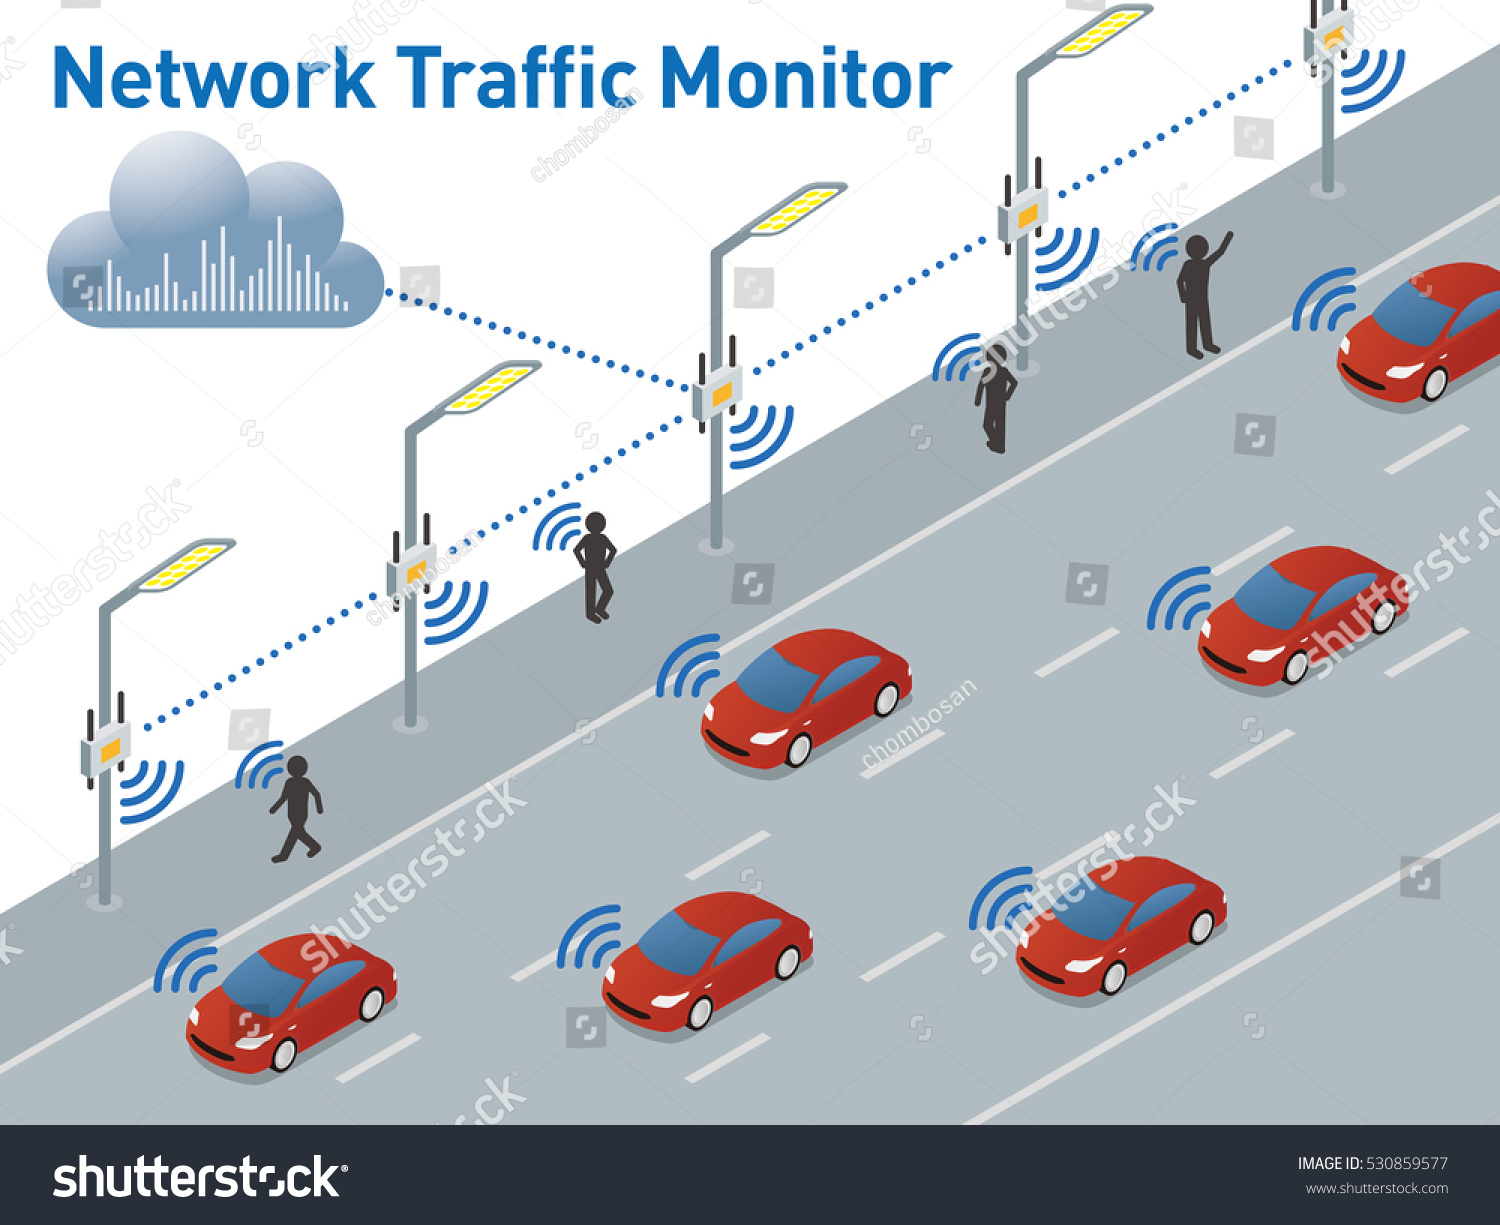 Network Traffic Monitoring System Diagram Detecting Stock Vector Fire Engines Cone Vehicles And Pedestrians By Sensor Wireless Communication